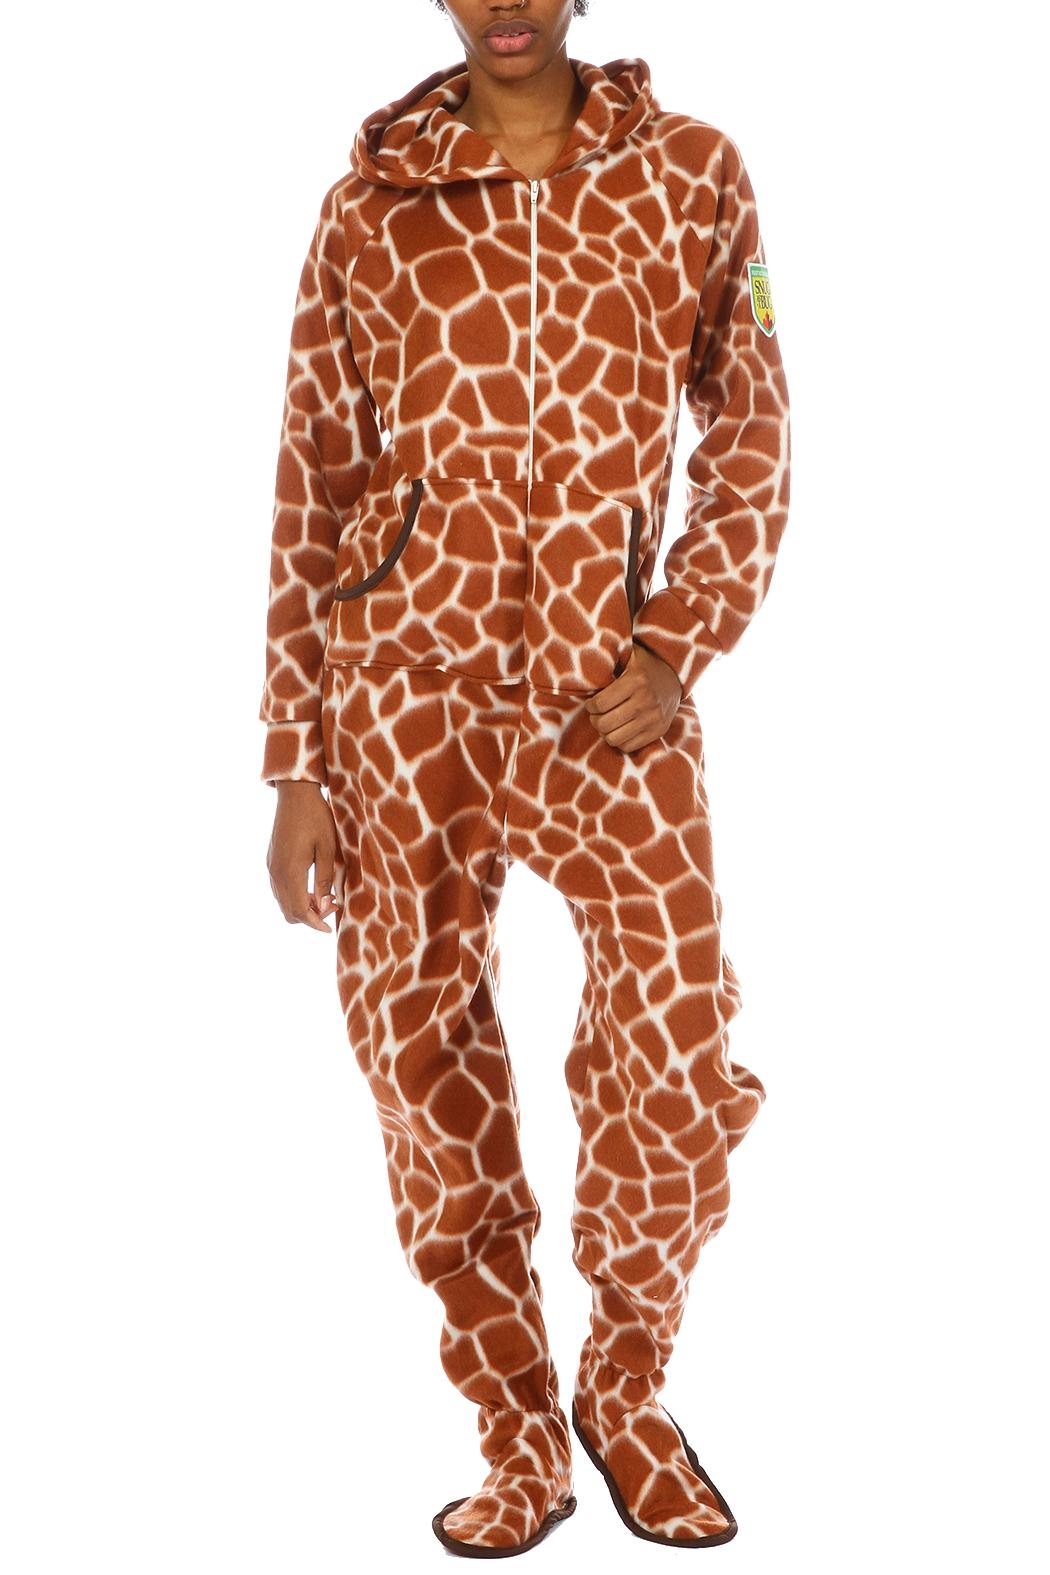 Snug As a Bug Giraffe Onesie - Main Image